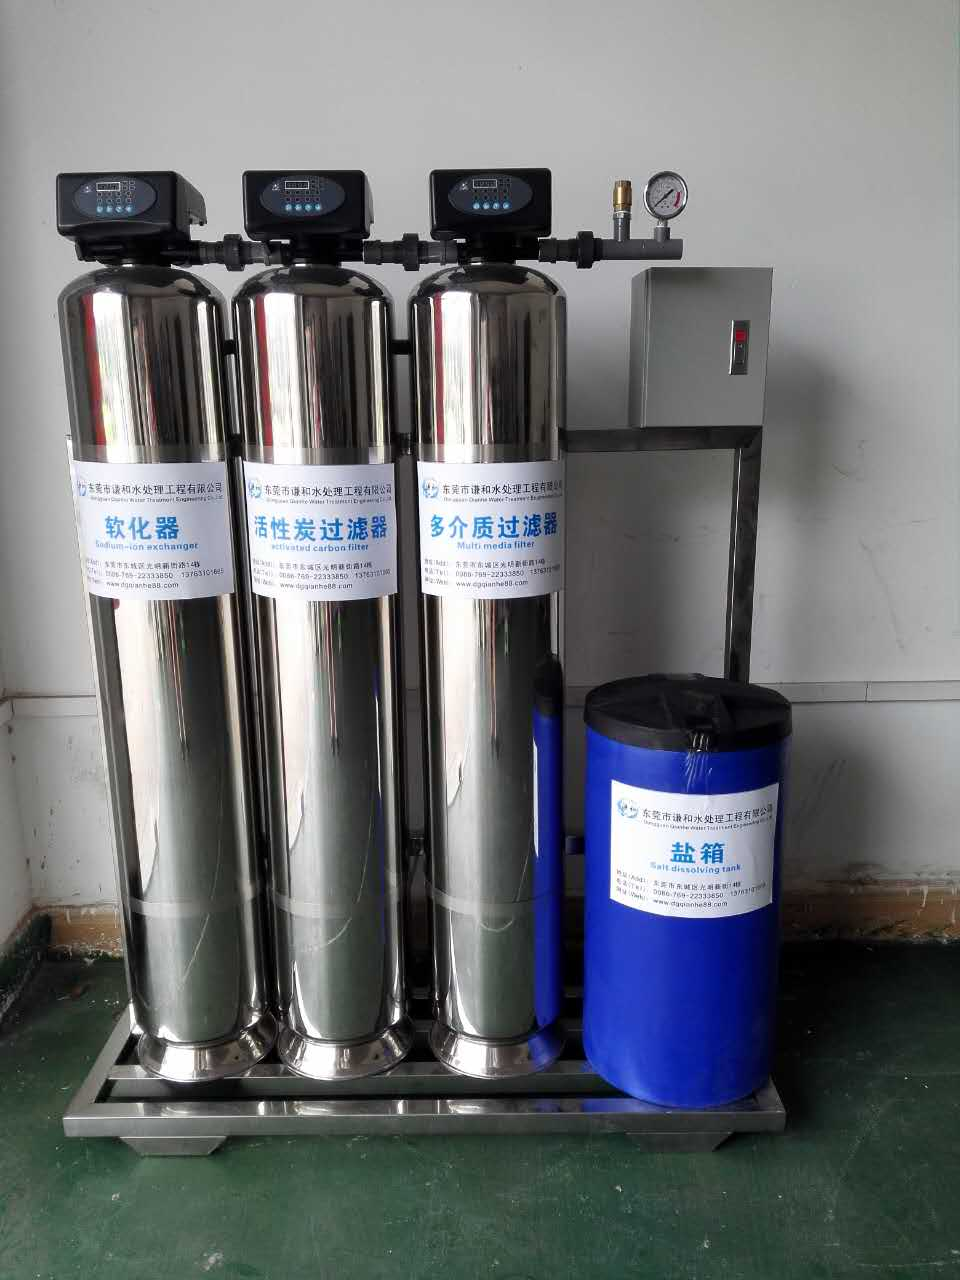 applicable for multiple scenarios stainless steel ion exchange resin water softener industrial water treatment filters